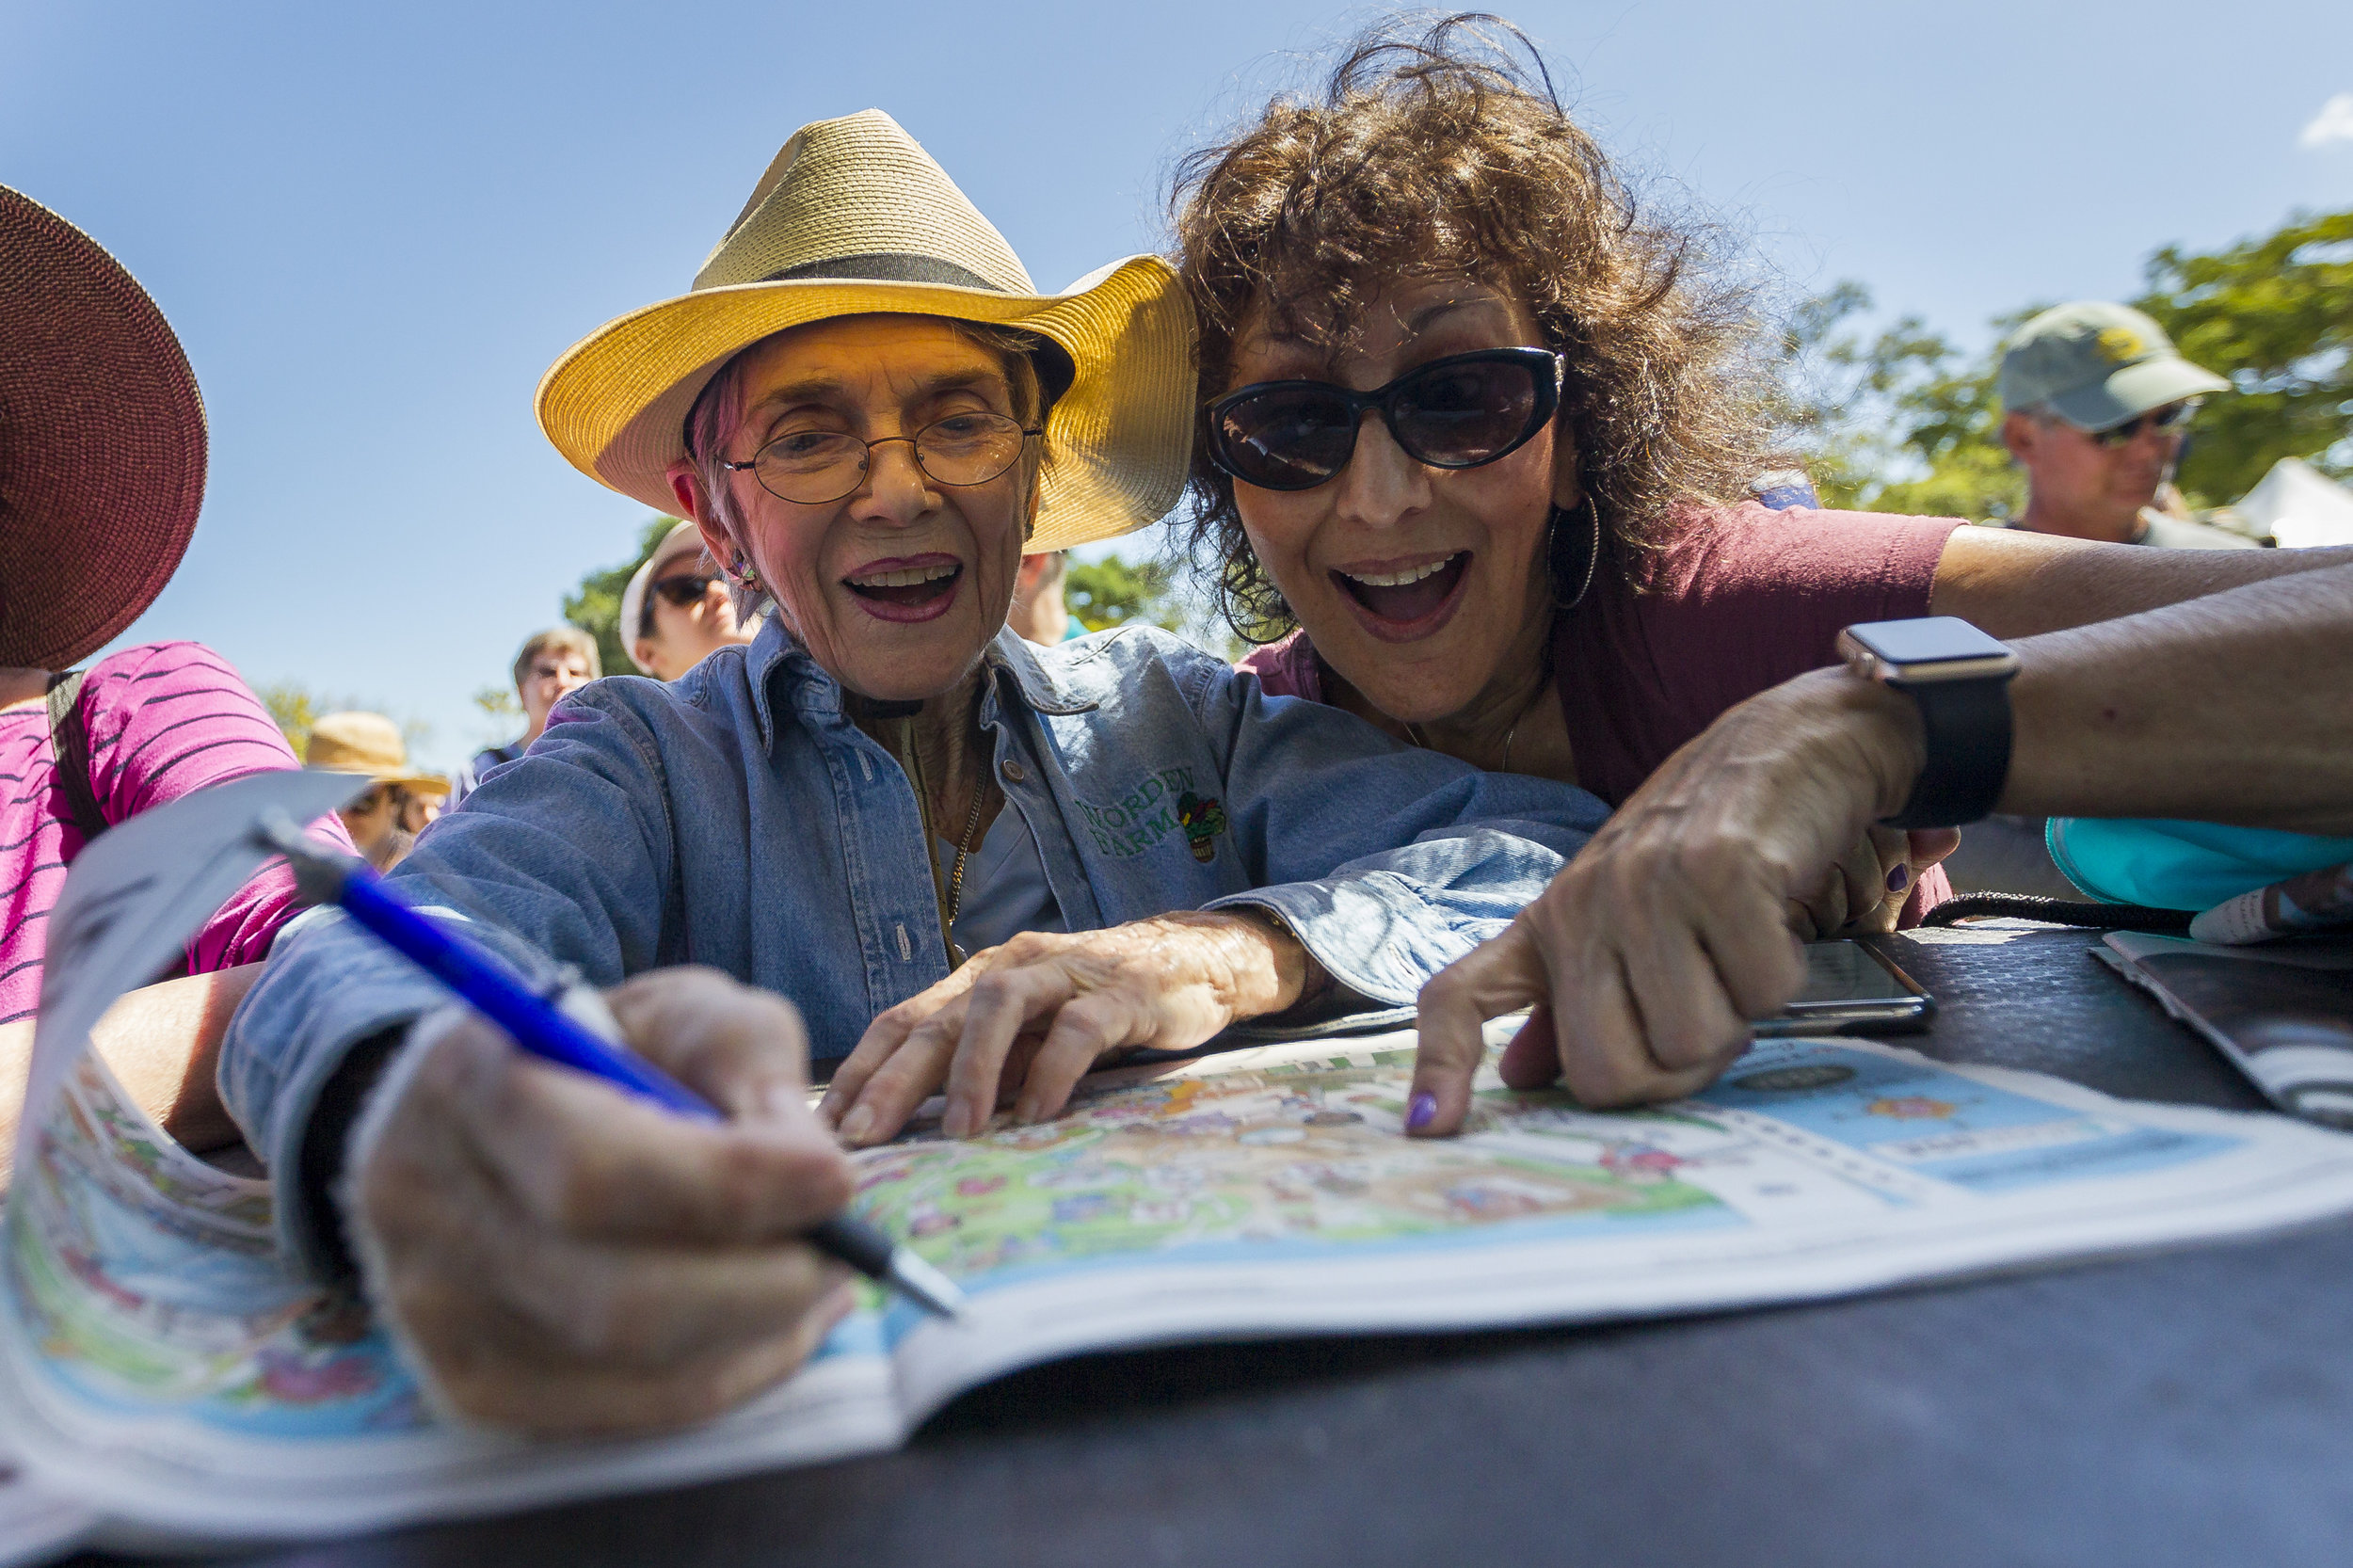 Pepi Granat, left, and her friend, Karen Shane, write down clues during the 2018 Herald Hunt at Museum Park in downtown Miami on Sunday, March 4, 2018.